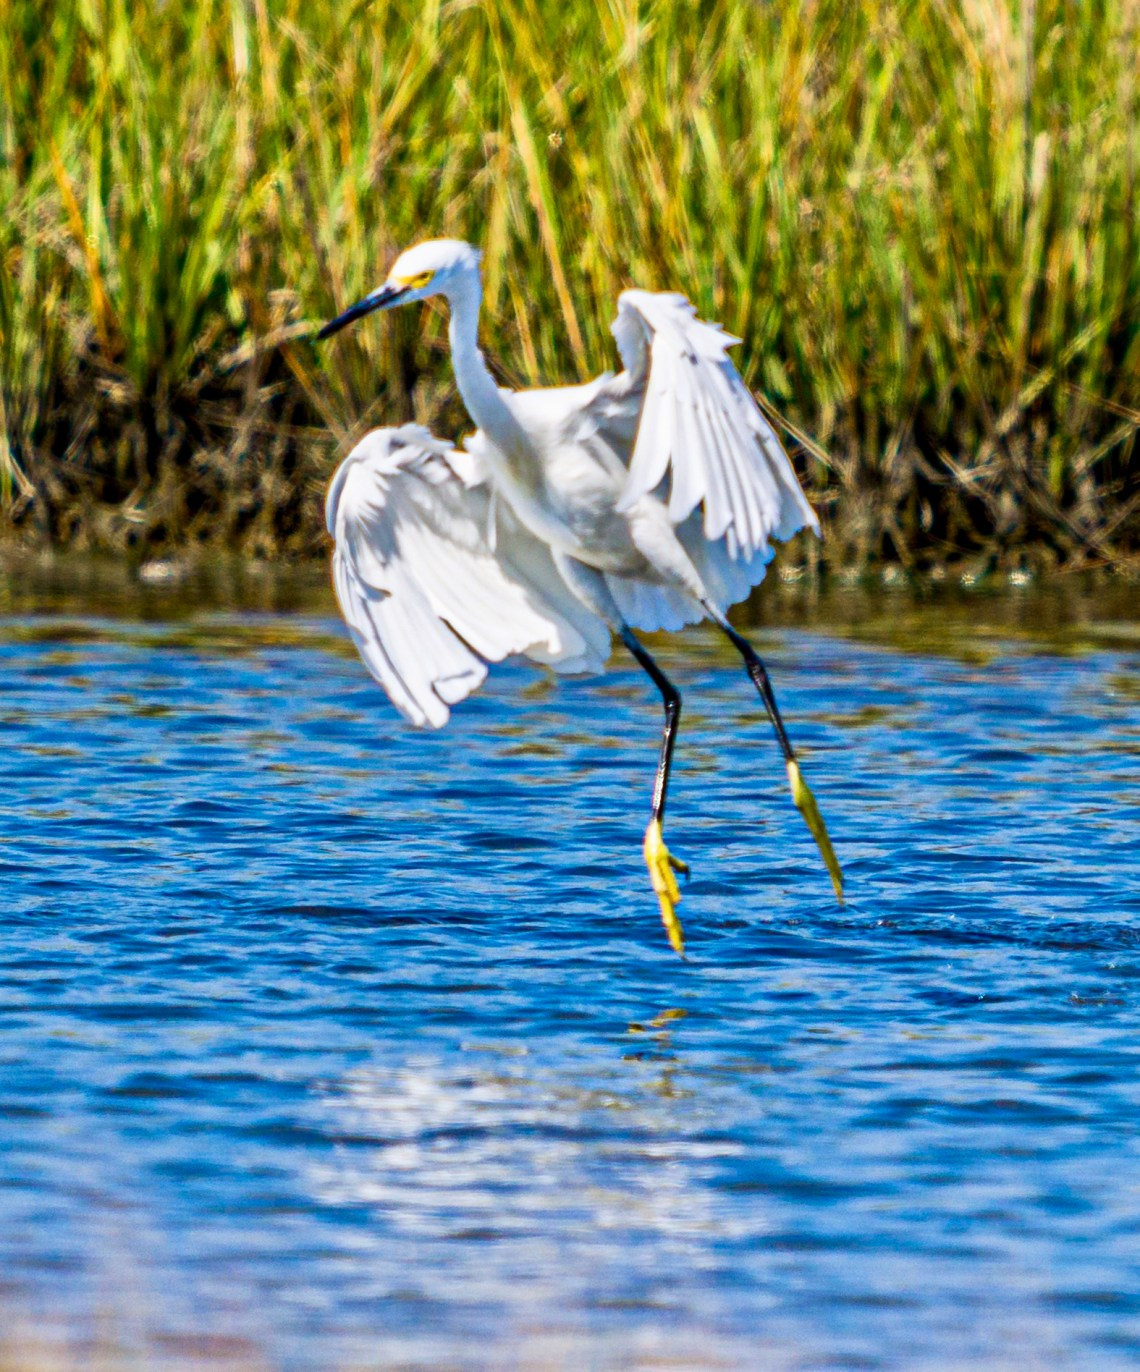 Second in a sequence of 7 photographs showing the Snowy Egret's fishing behavior.